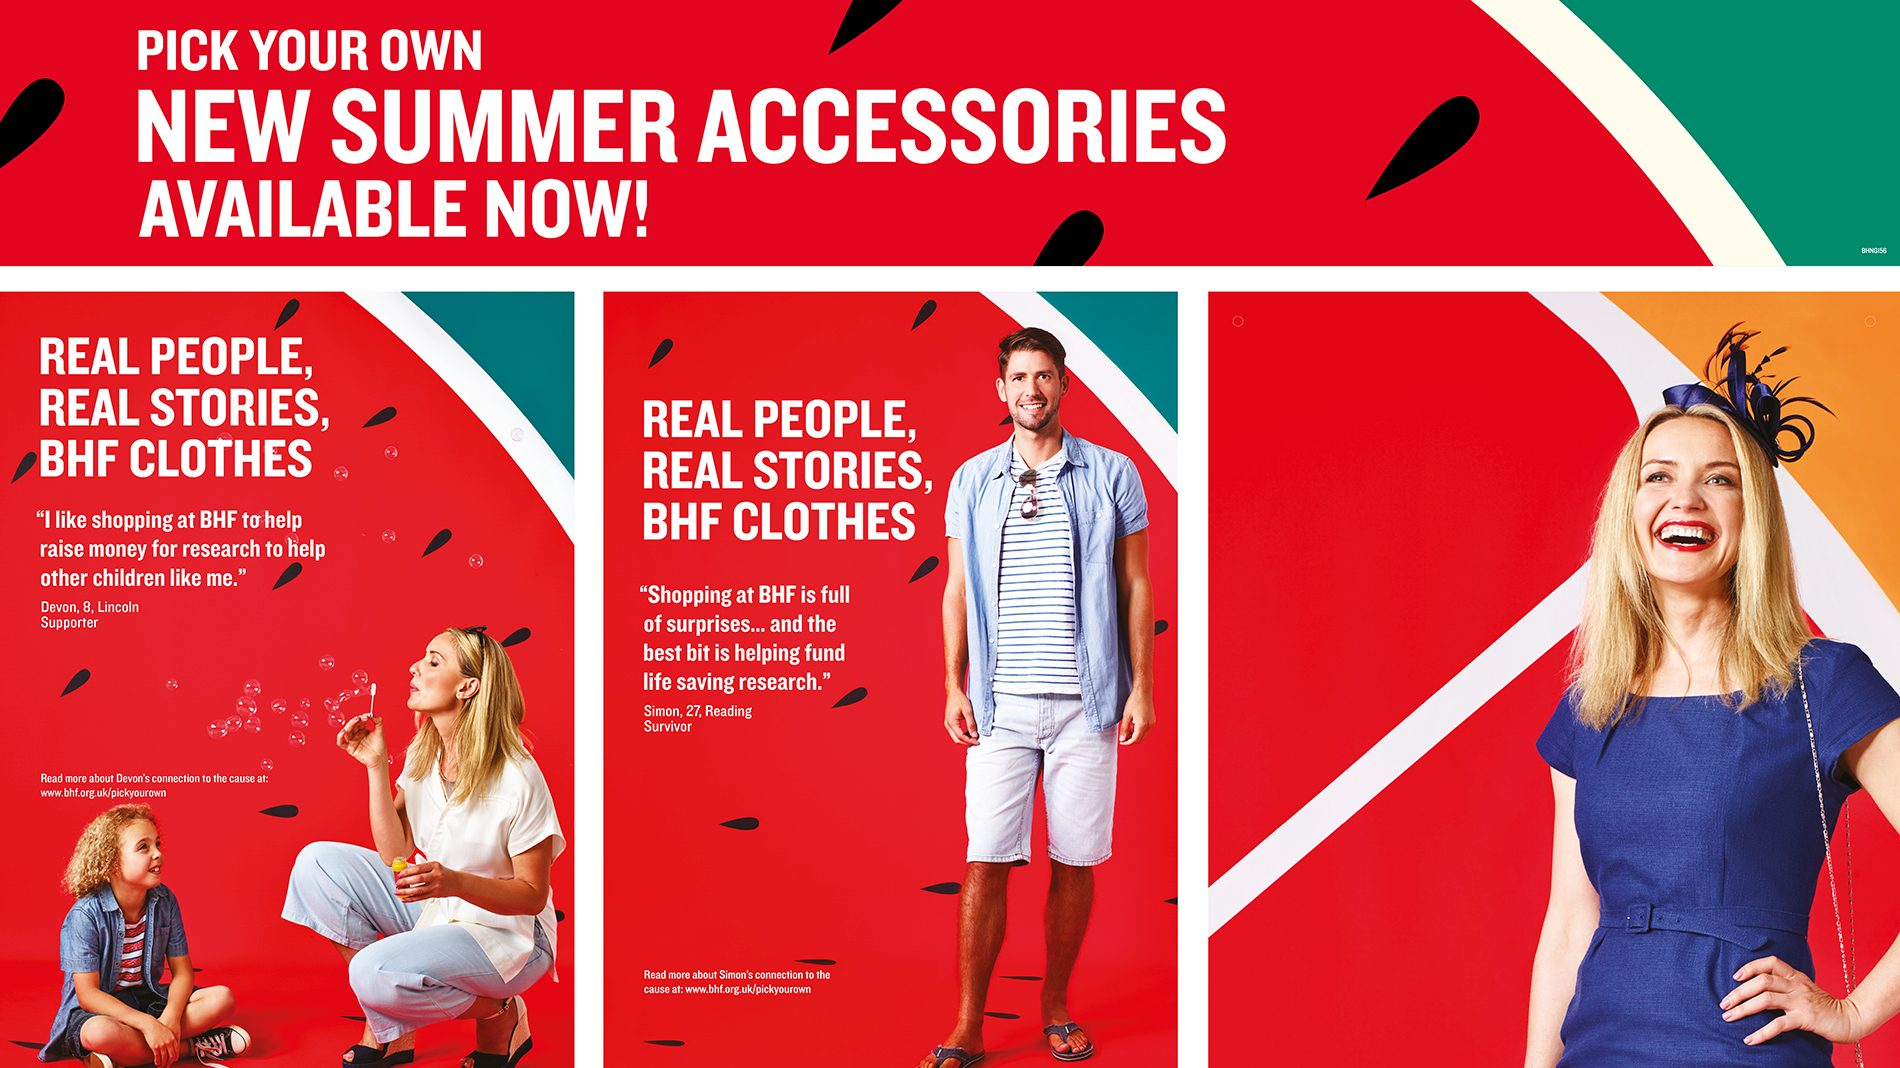 POS for BHF summer campaign